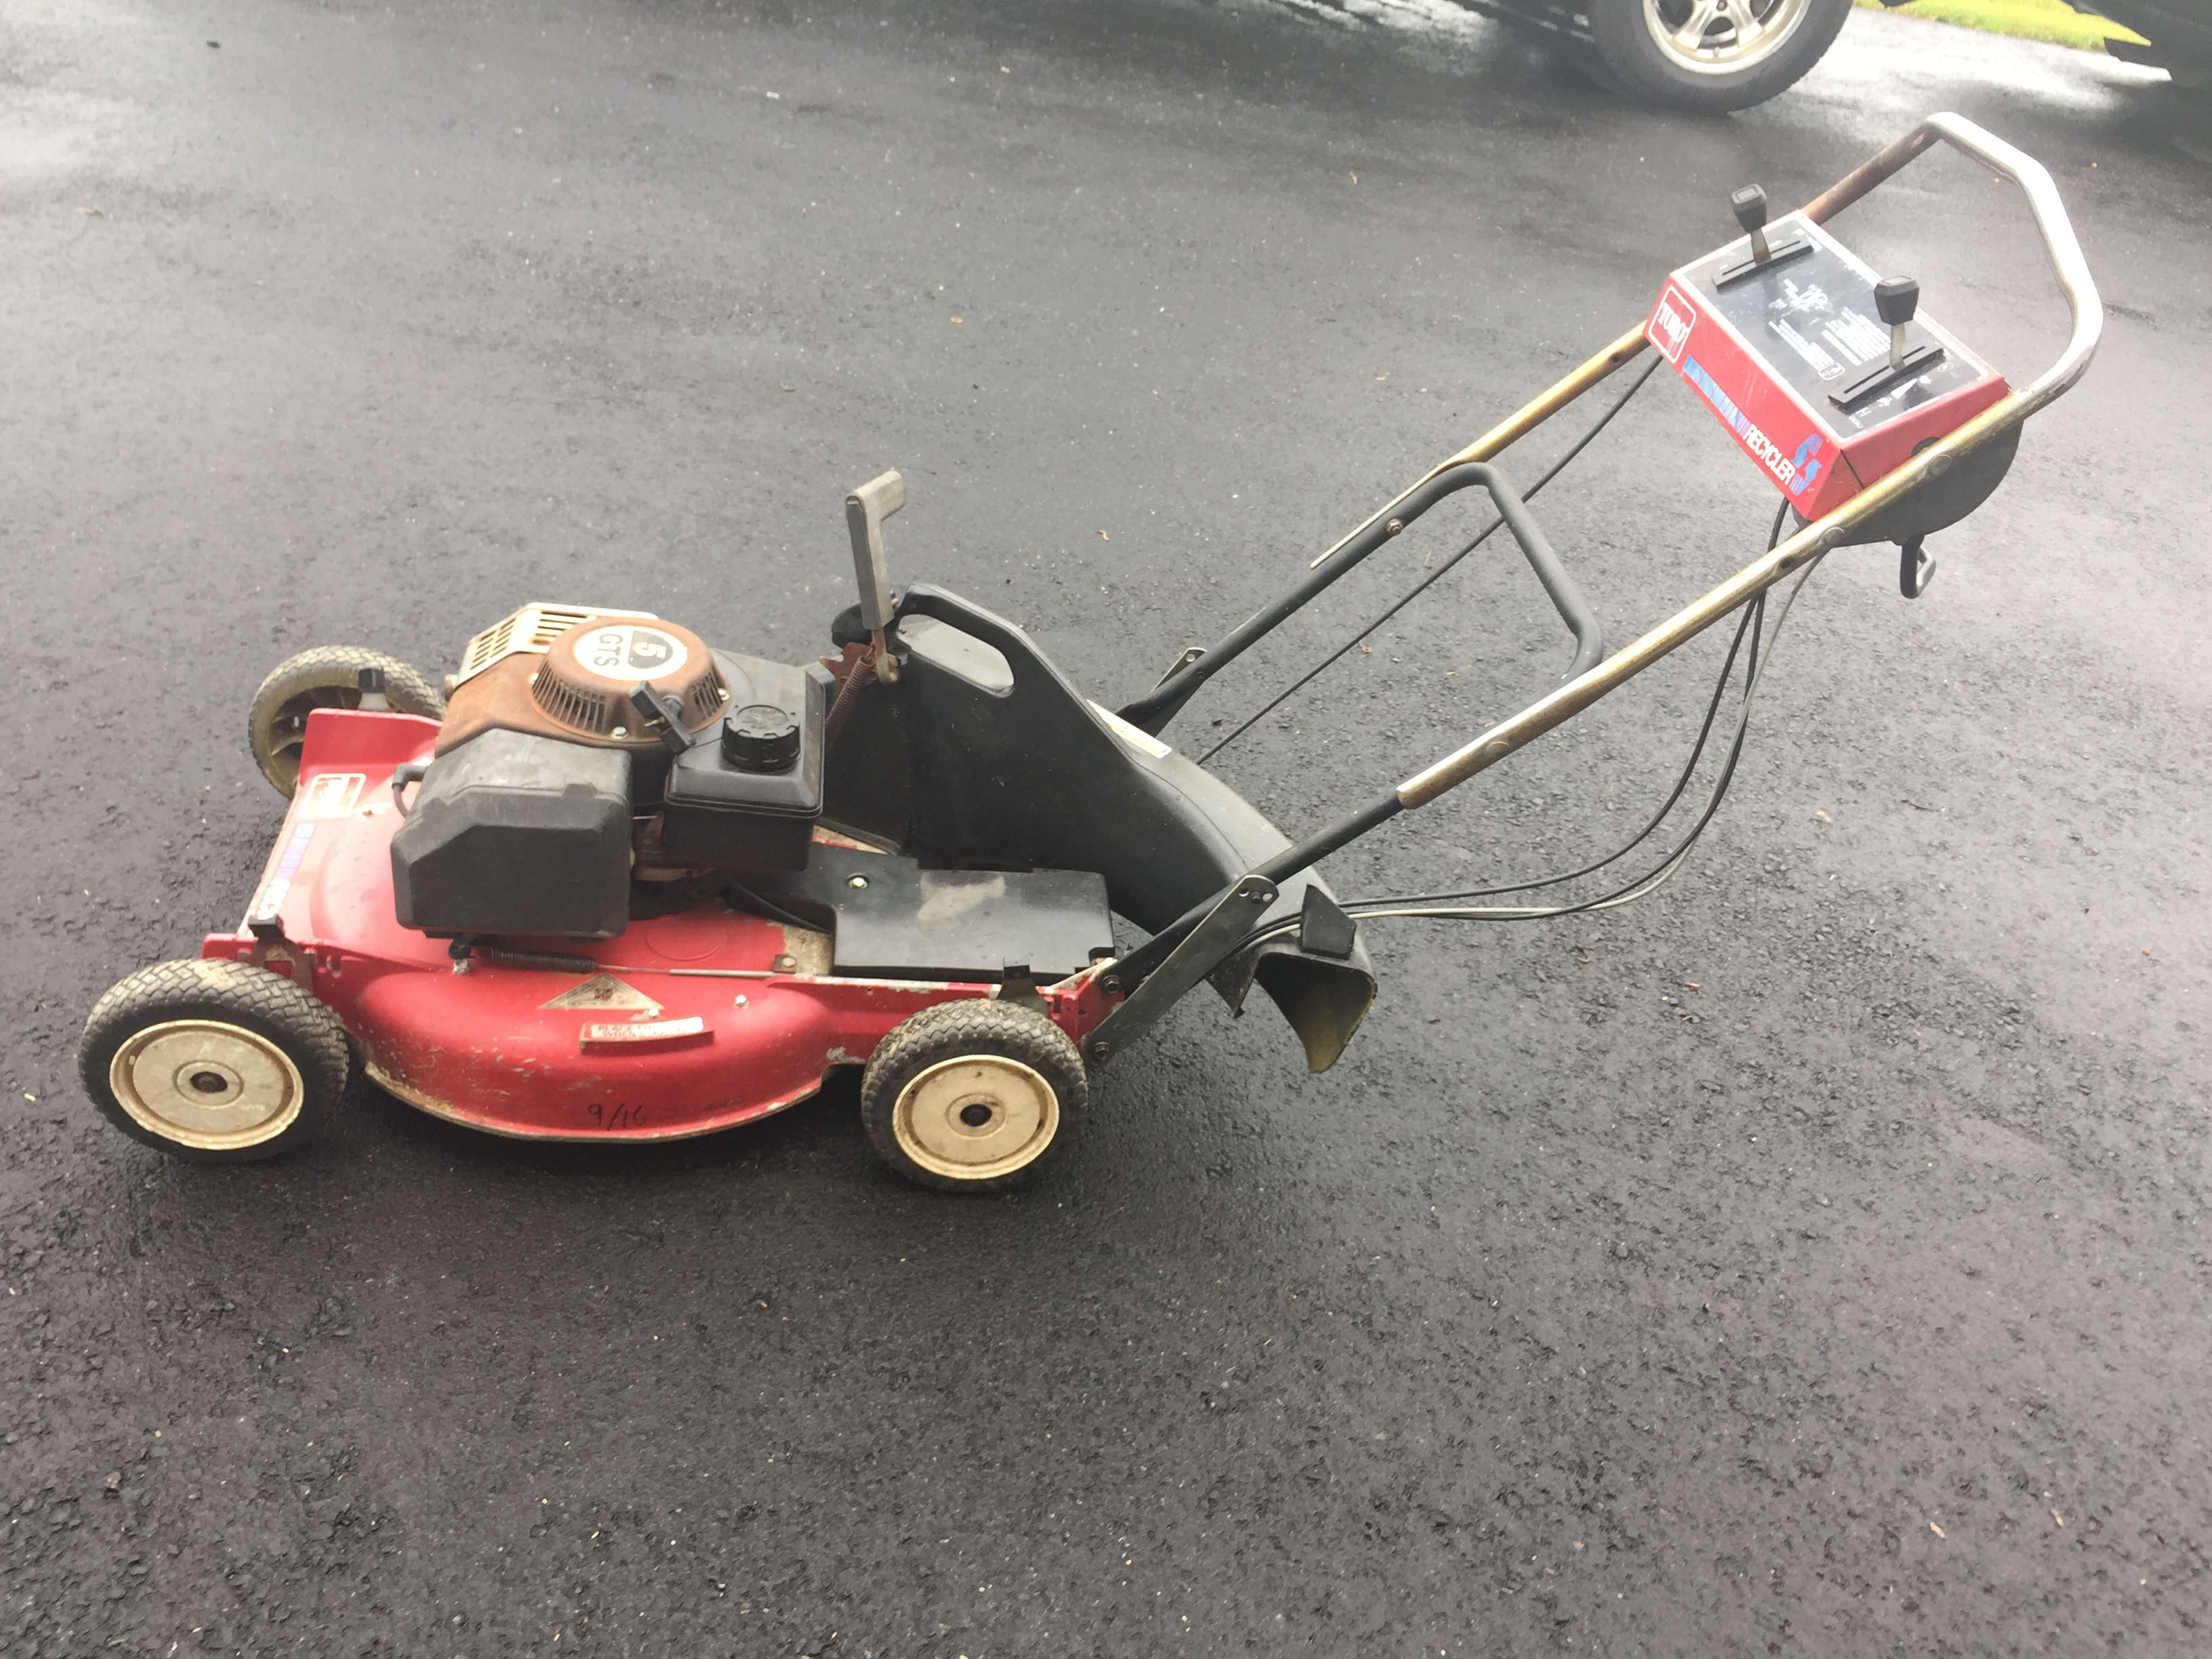 Need your help with a couple specs for Toro 22025 commercial